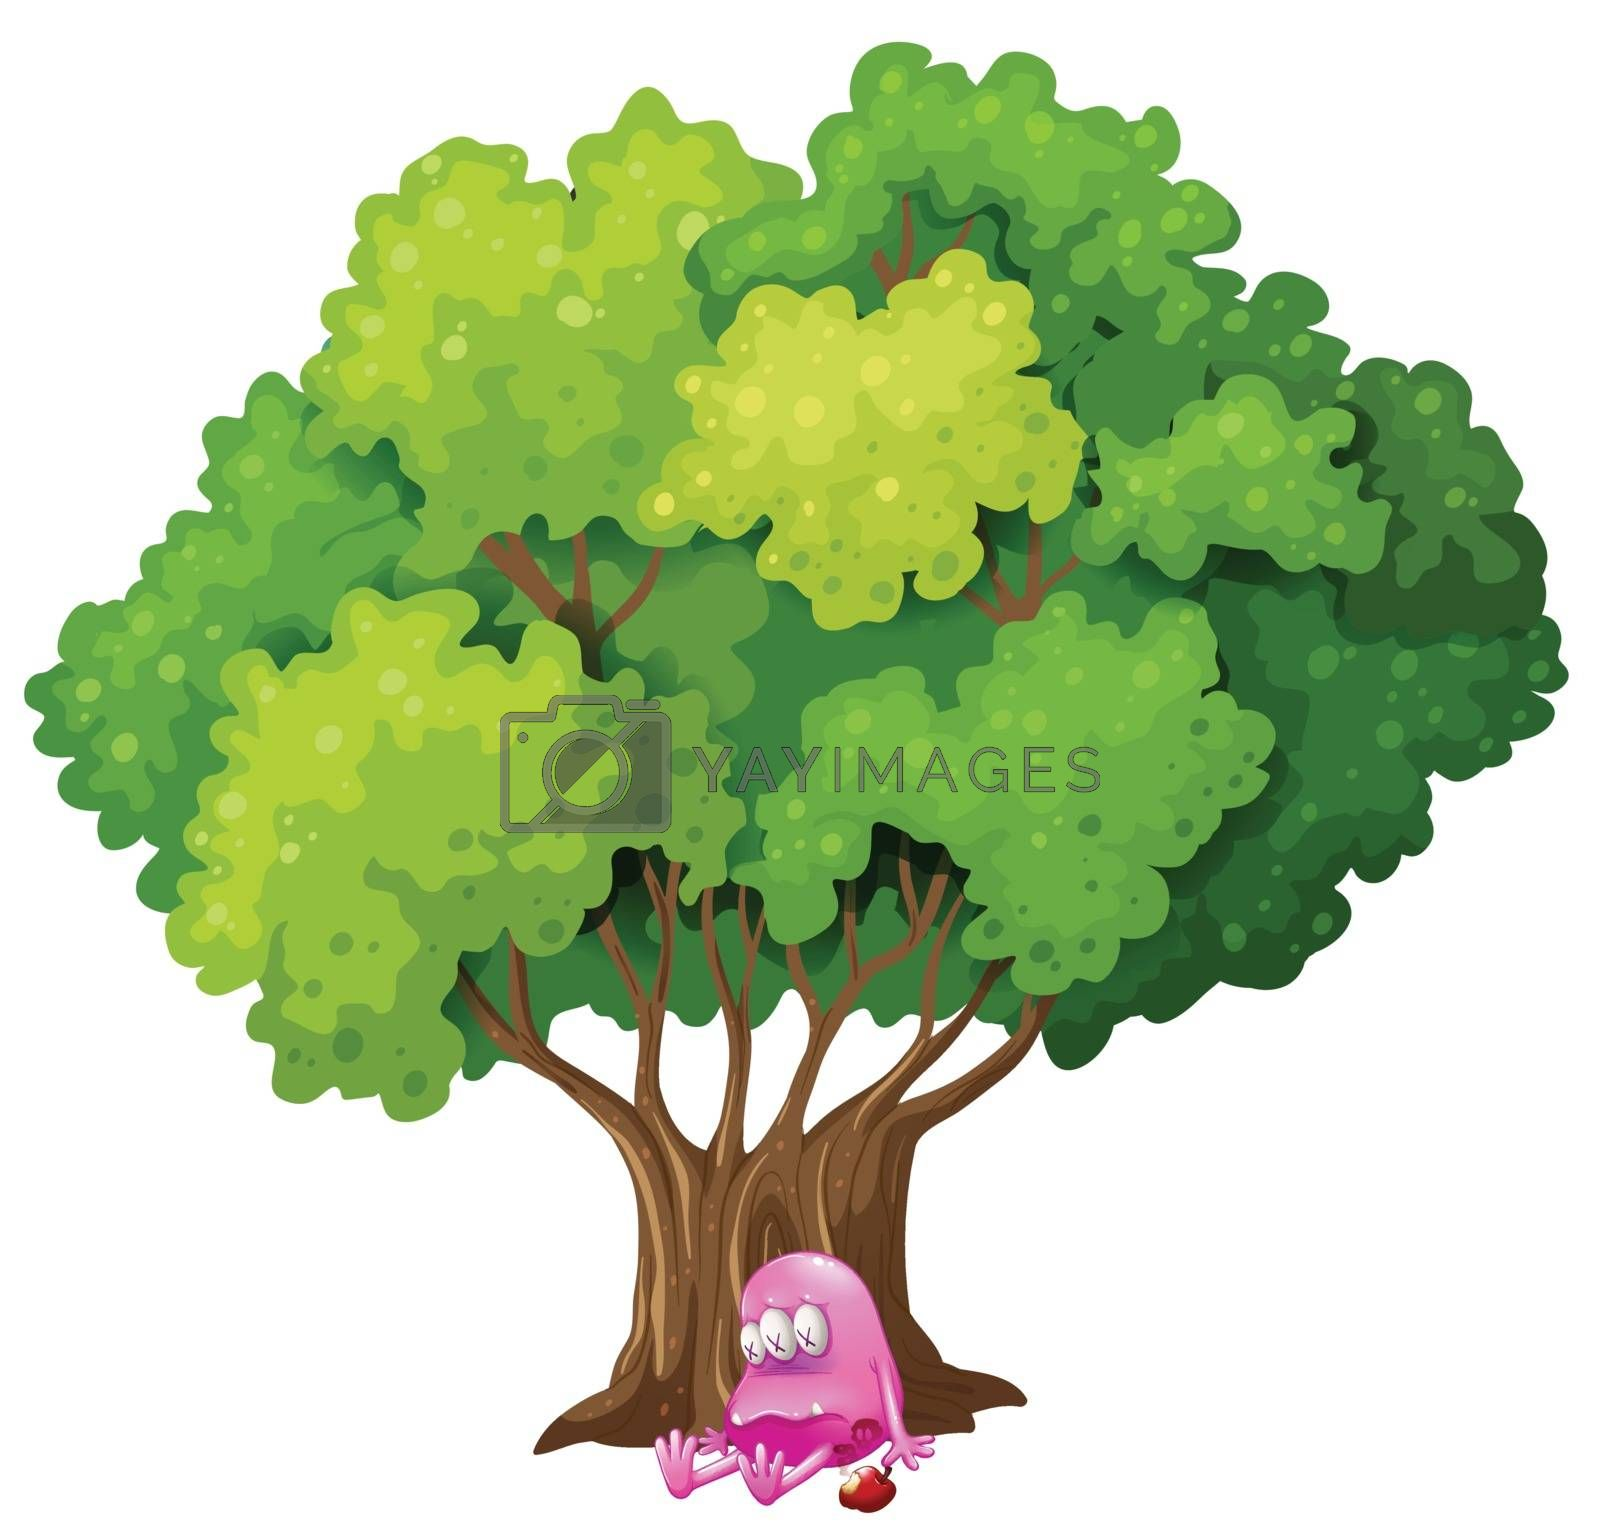 Illustration of a poisoned pink monster under the tree on a white background